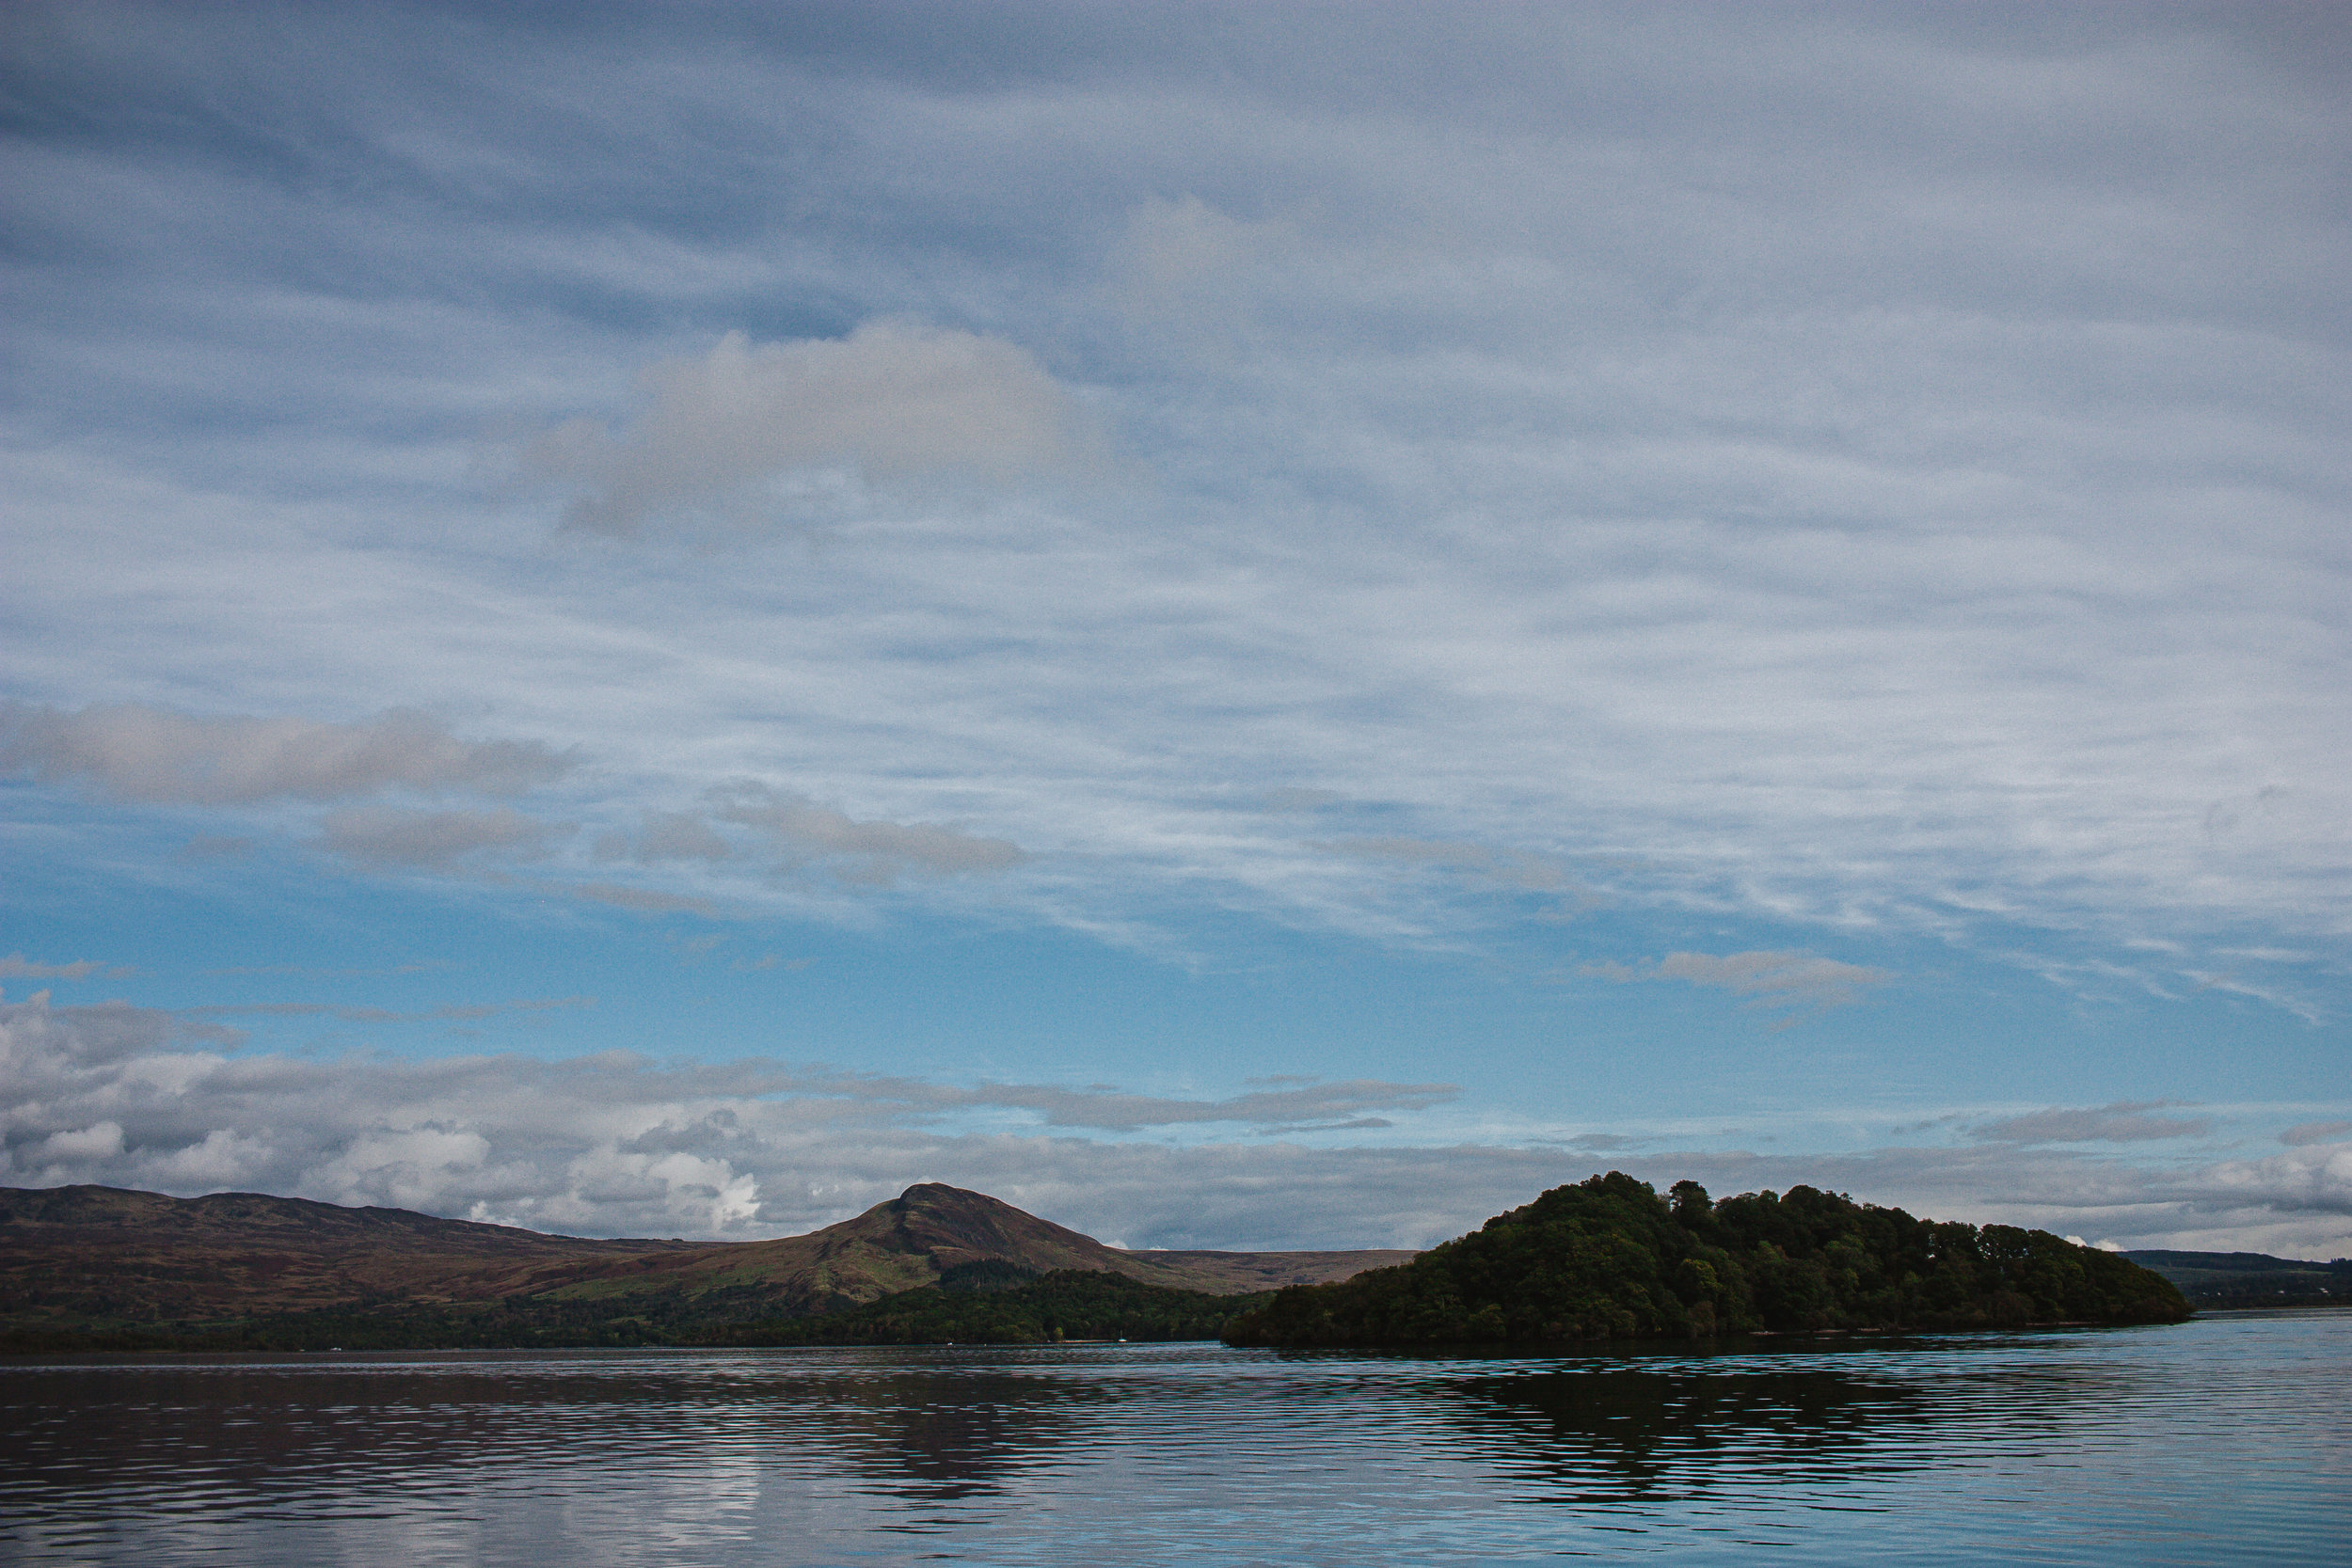 Conic Hill is the hill in the background. We climbed that last month. Blog post incoming about that hike as well!